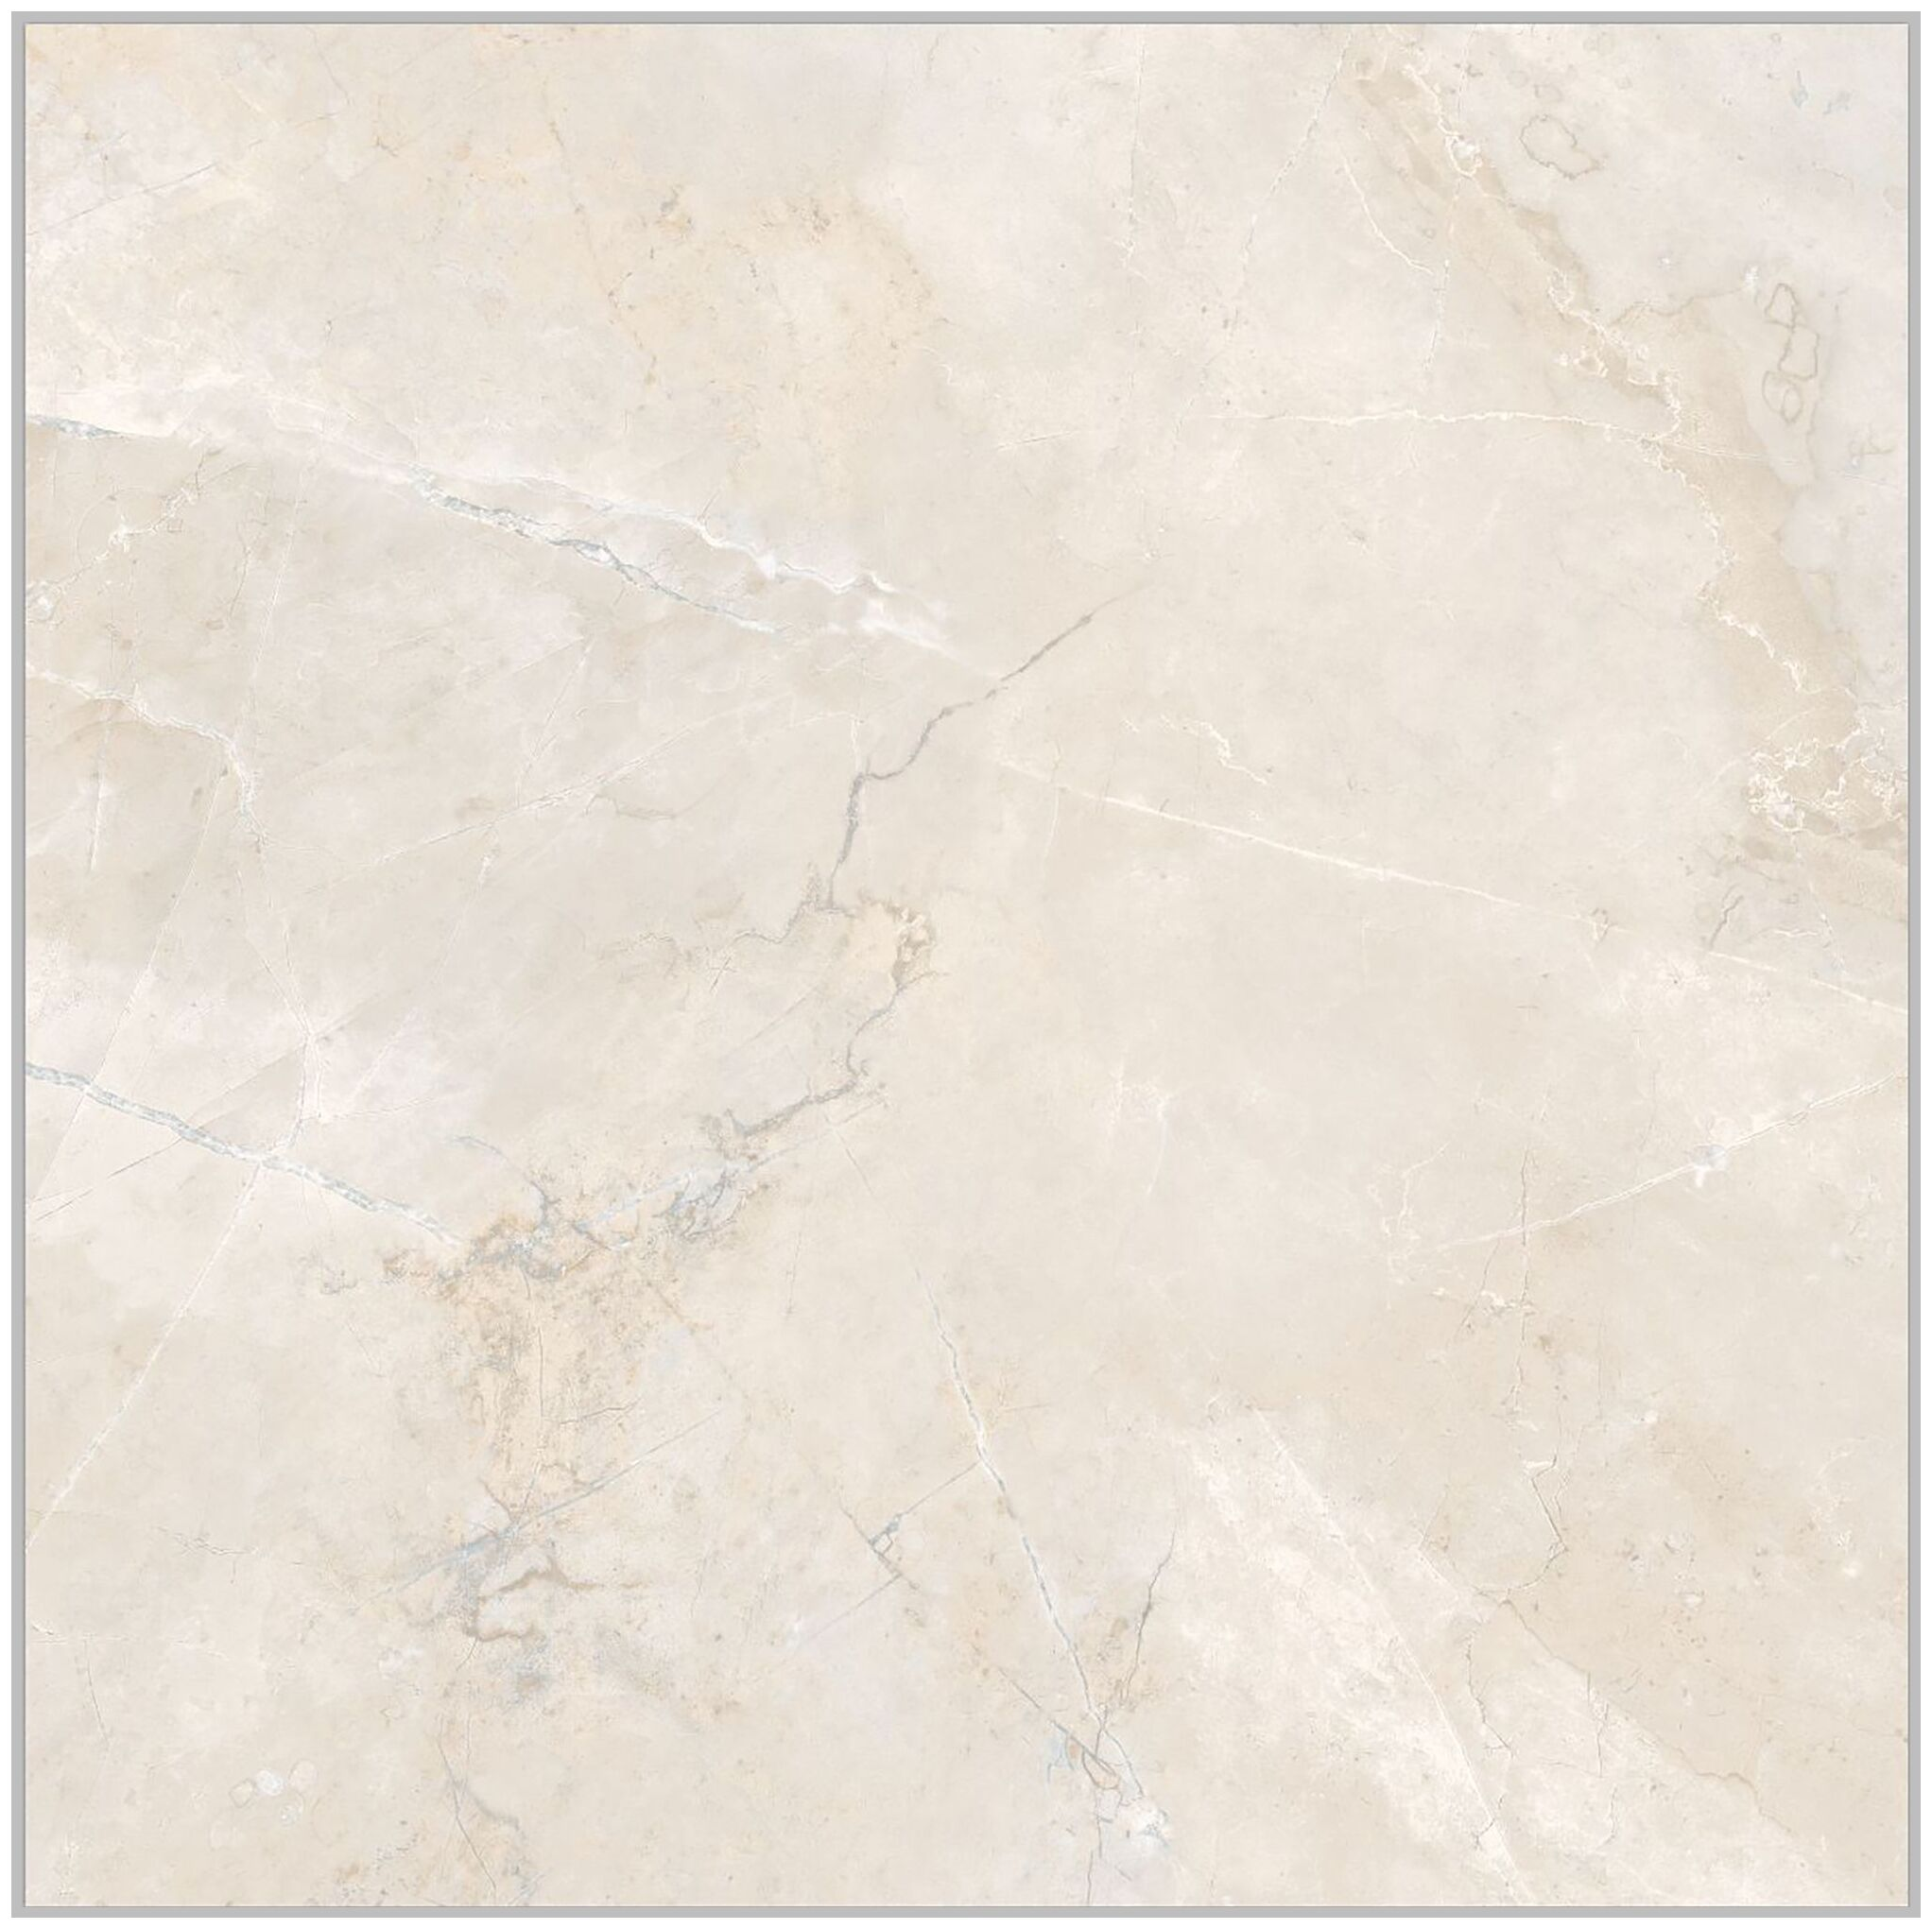 56 Reference Of Ceramic Floor Tile Texture Living Room Tile In 2020 Ceramic Floor Tile Flooring Living Room Tiles